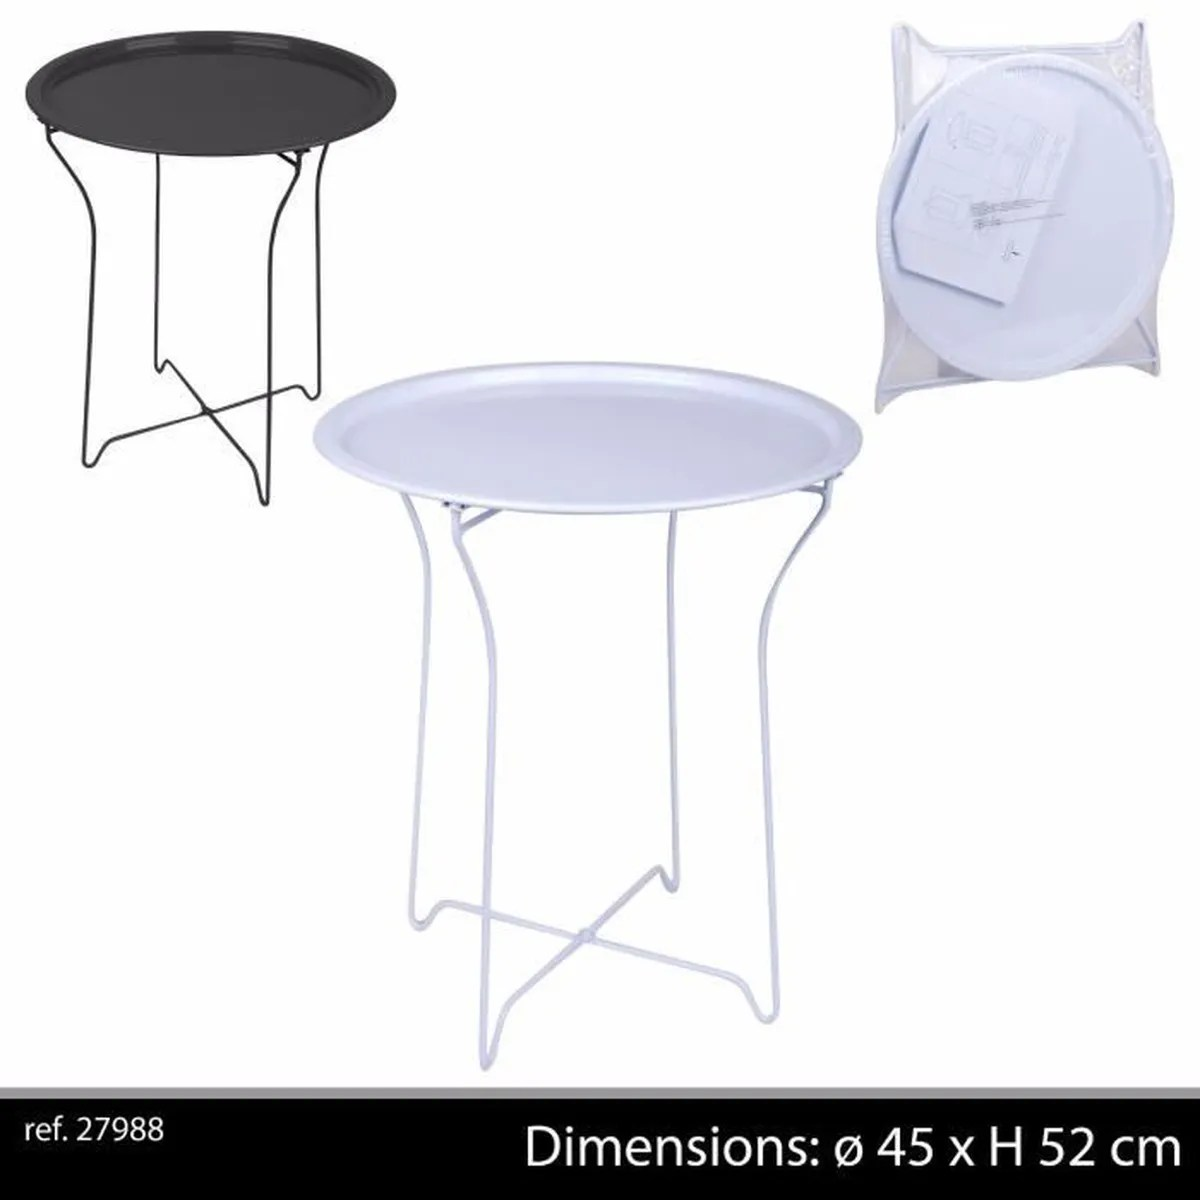 Tables Basses De Salon Pliantes Couleur Blanche Table Basse En Metal Bar Appoint Pliante Pliable